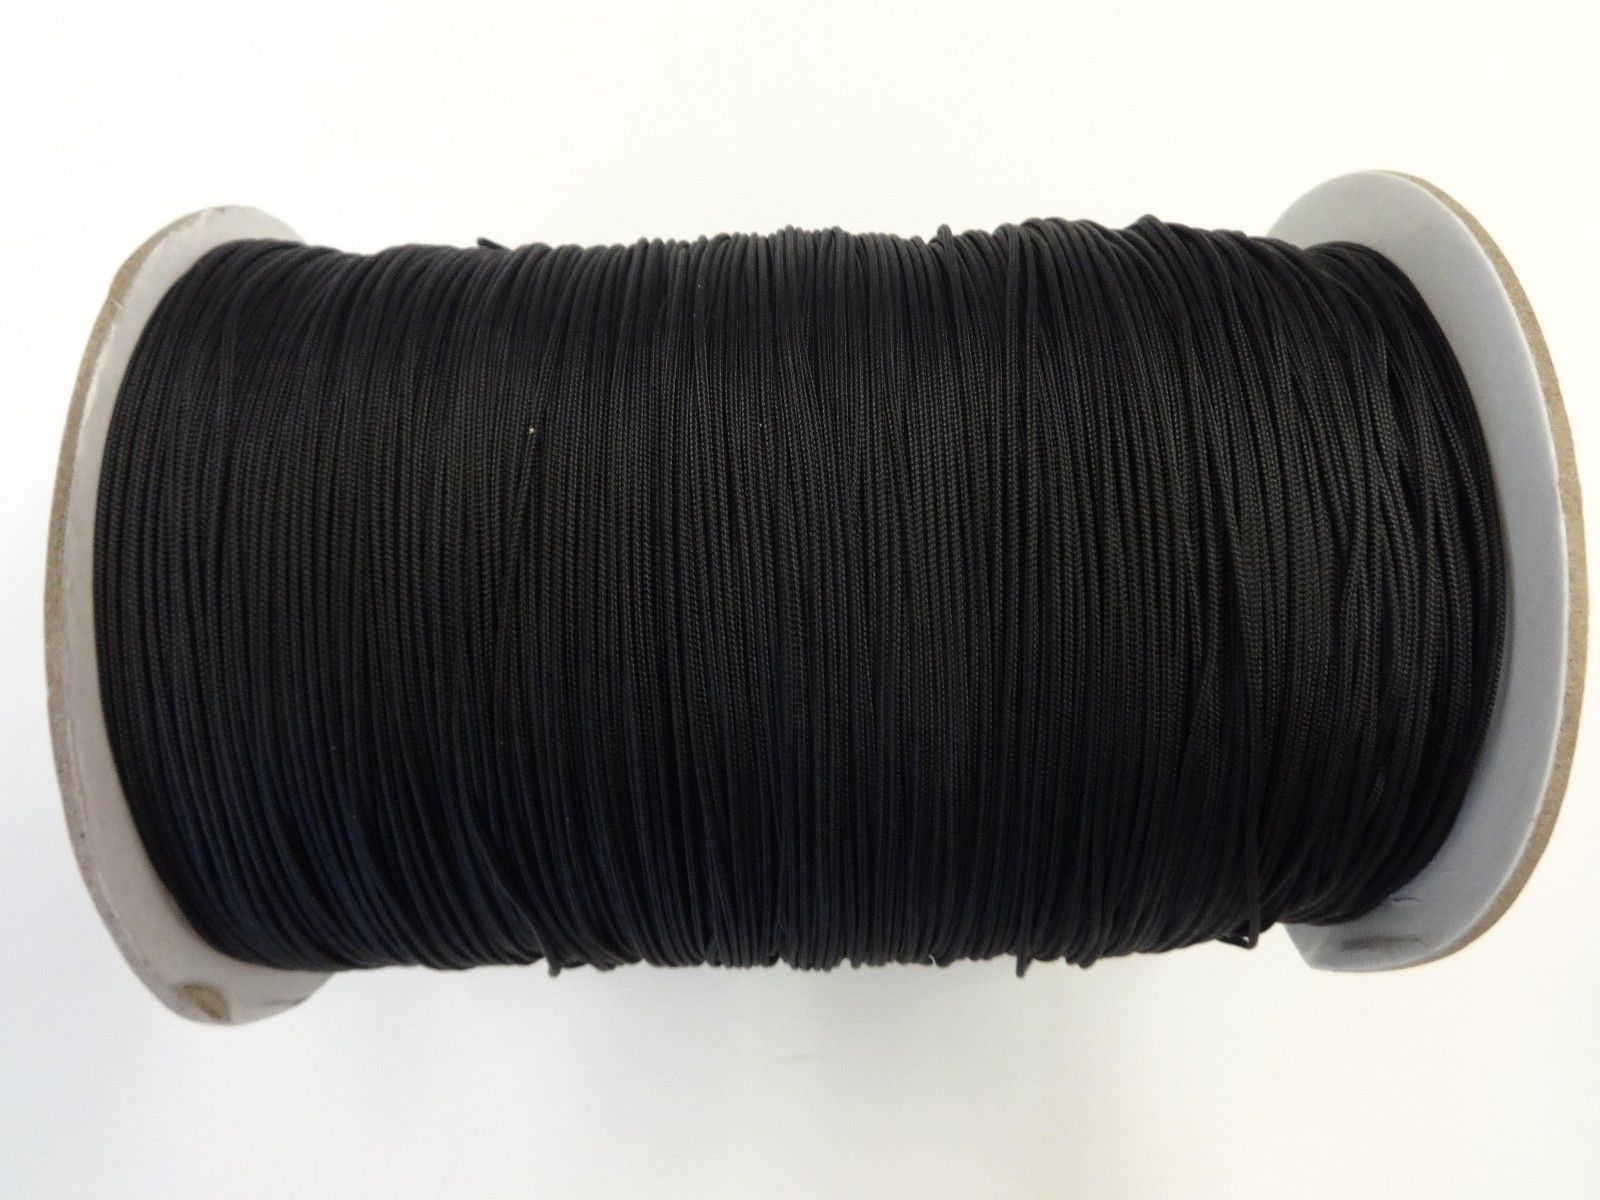 20  FEET:1.8mm BLACK LIFT CORD for Blinds, Roman Shades and More